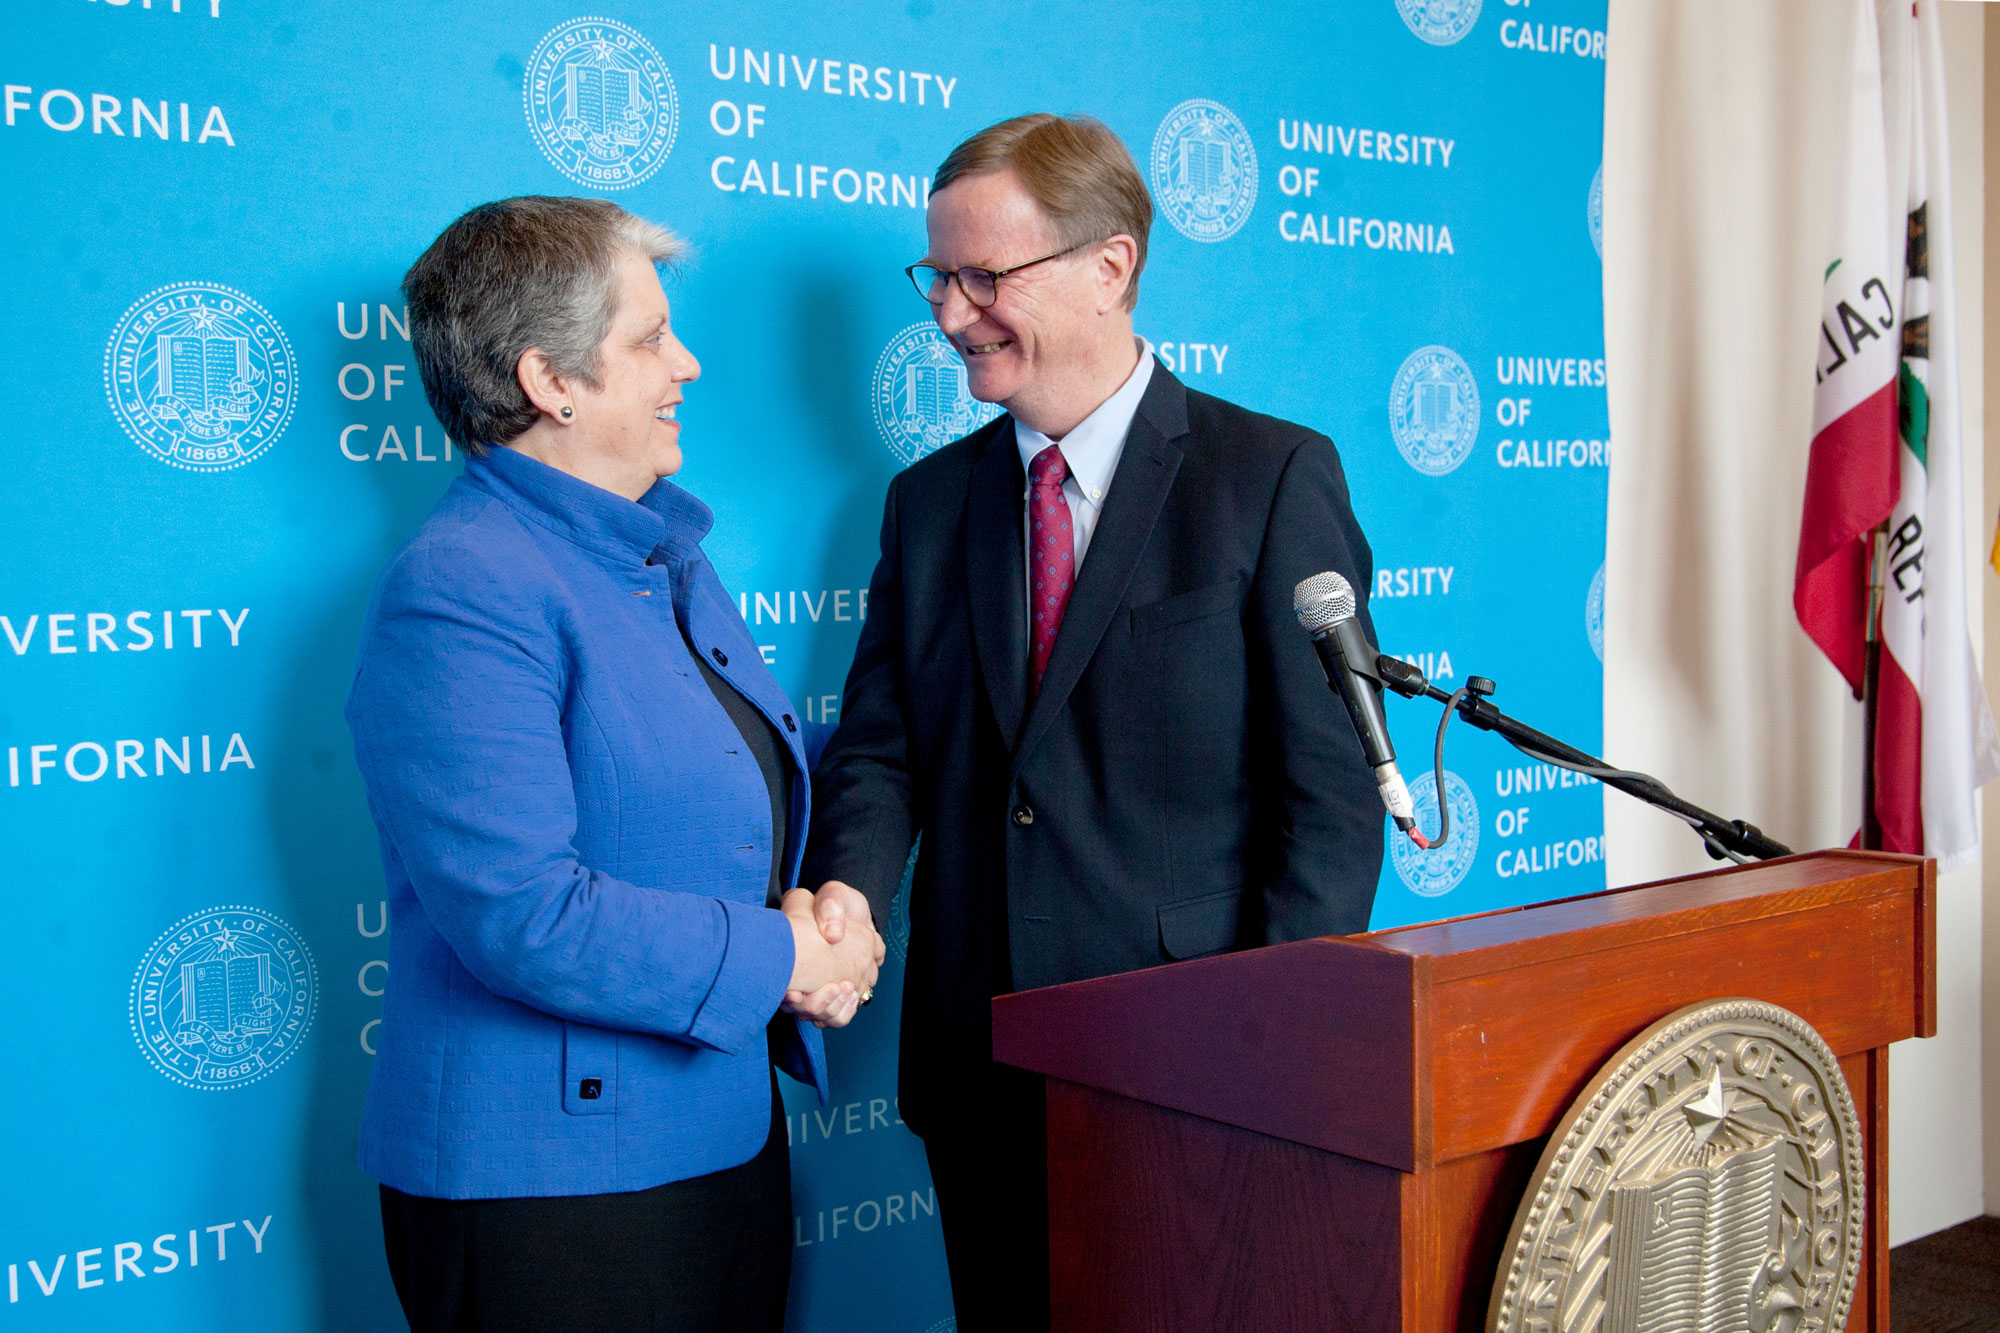 Janet Napolitano and Sam Hawgood shake hands at a press briefing after Hawgood was confirmed as UCSF's new chancellor